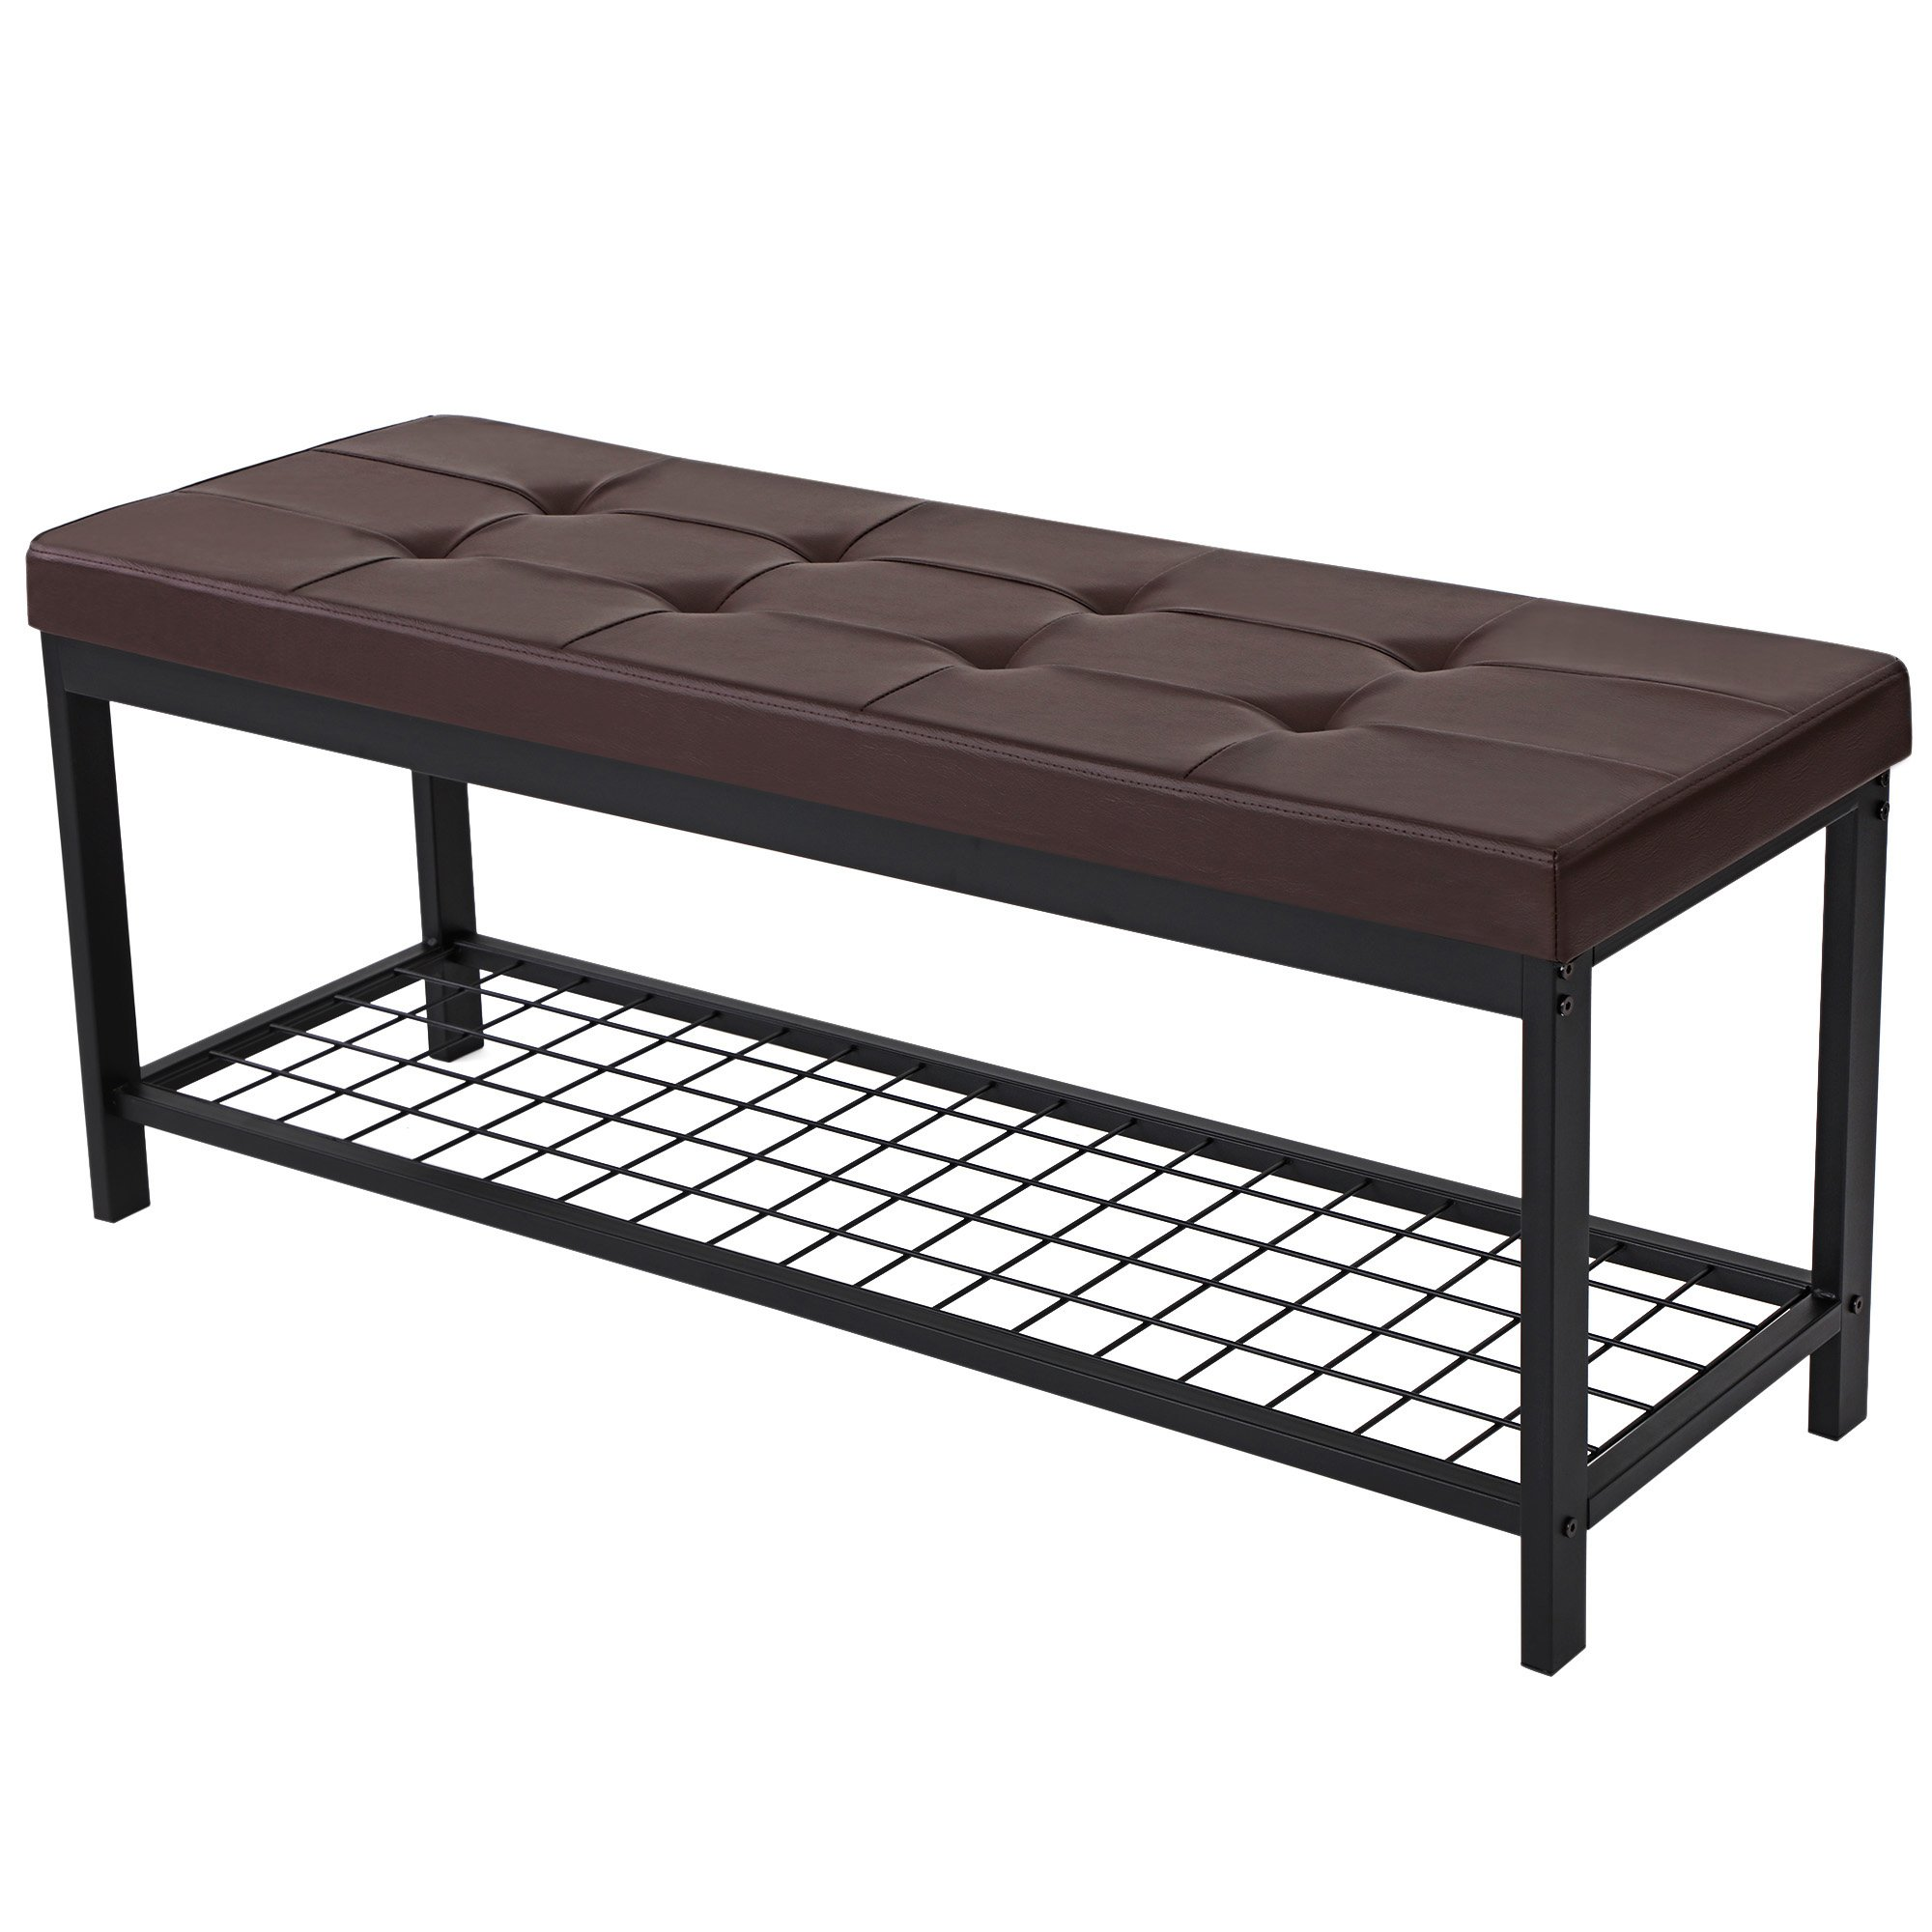 SONGMICS 45'' L Metal Entryway Hallway Upholstered Bench with Storage Shelf Brown ULBS40Z